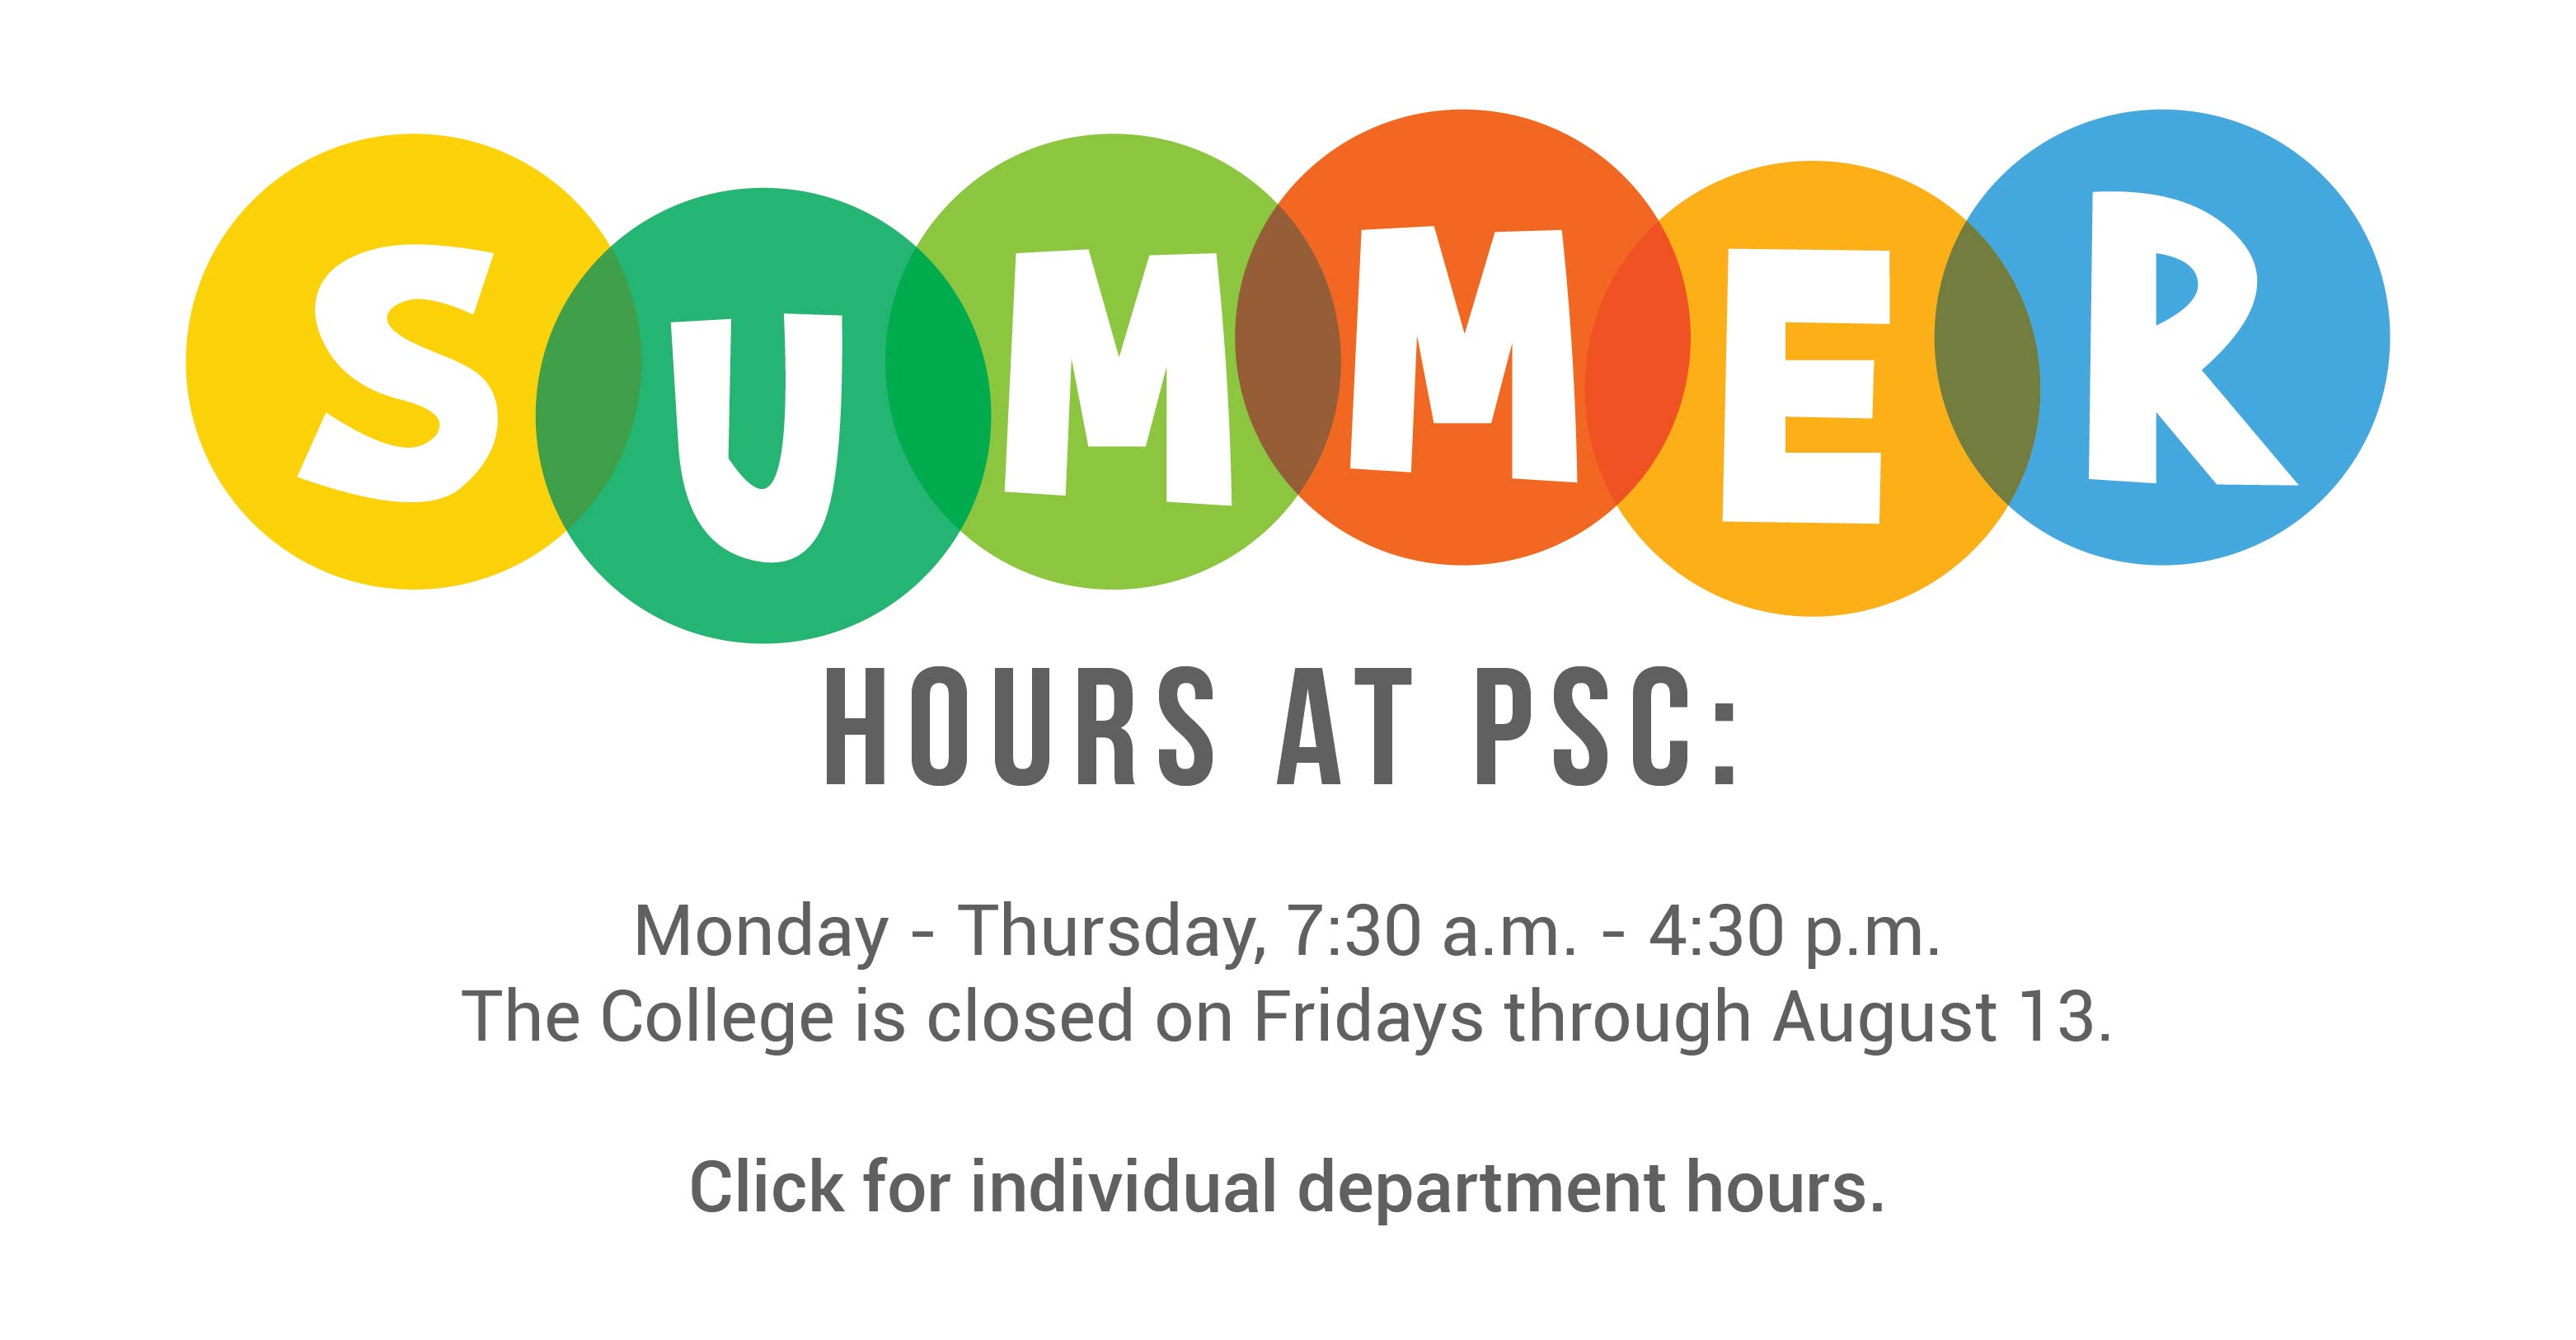 The college is closed on Fridays through August 13.